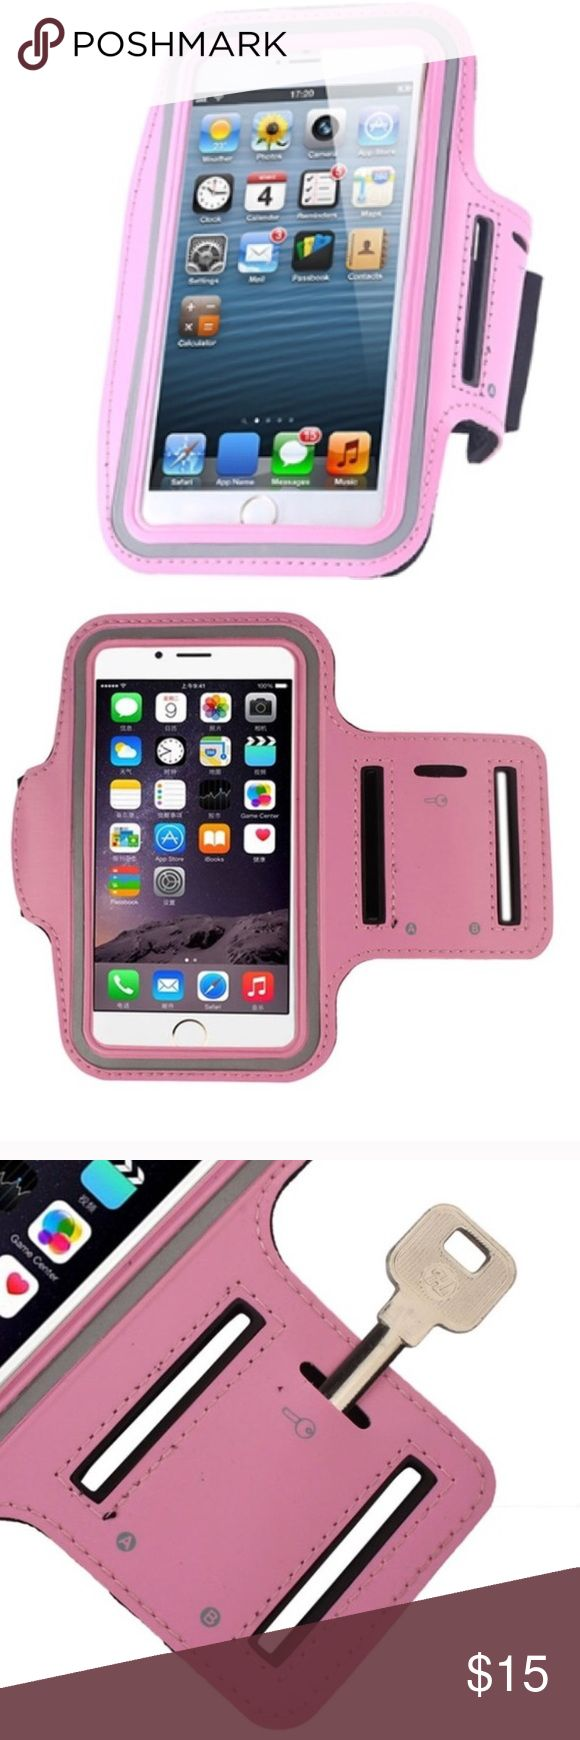 NEW Running/Workout Armband Case for iPhone 6/6s Brand new! Lightweight, durable leather/neoprene material with adjustable Velcro strap. Also has slot for your key on the strap. The off-colored strip around the front of the case is reflective for early morning or later at night while you are outside. Clear plastic protective face over the front so you can still see and use the screen while keeping it from getting damaged. Color is a cherry blossom pink, most like first photo, *other colors…